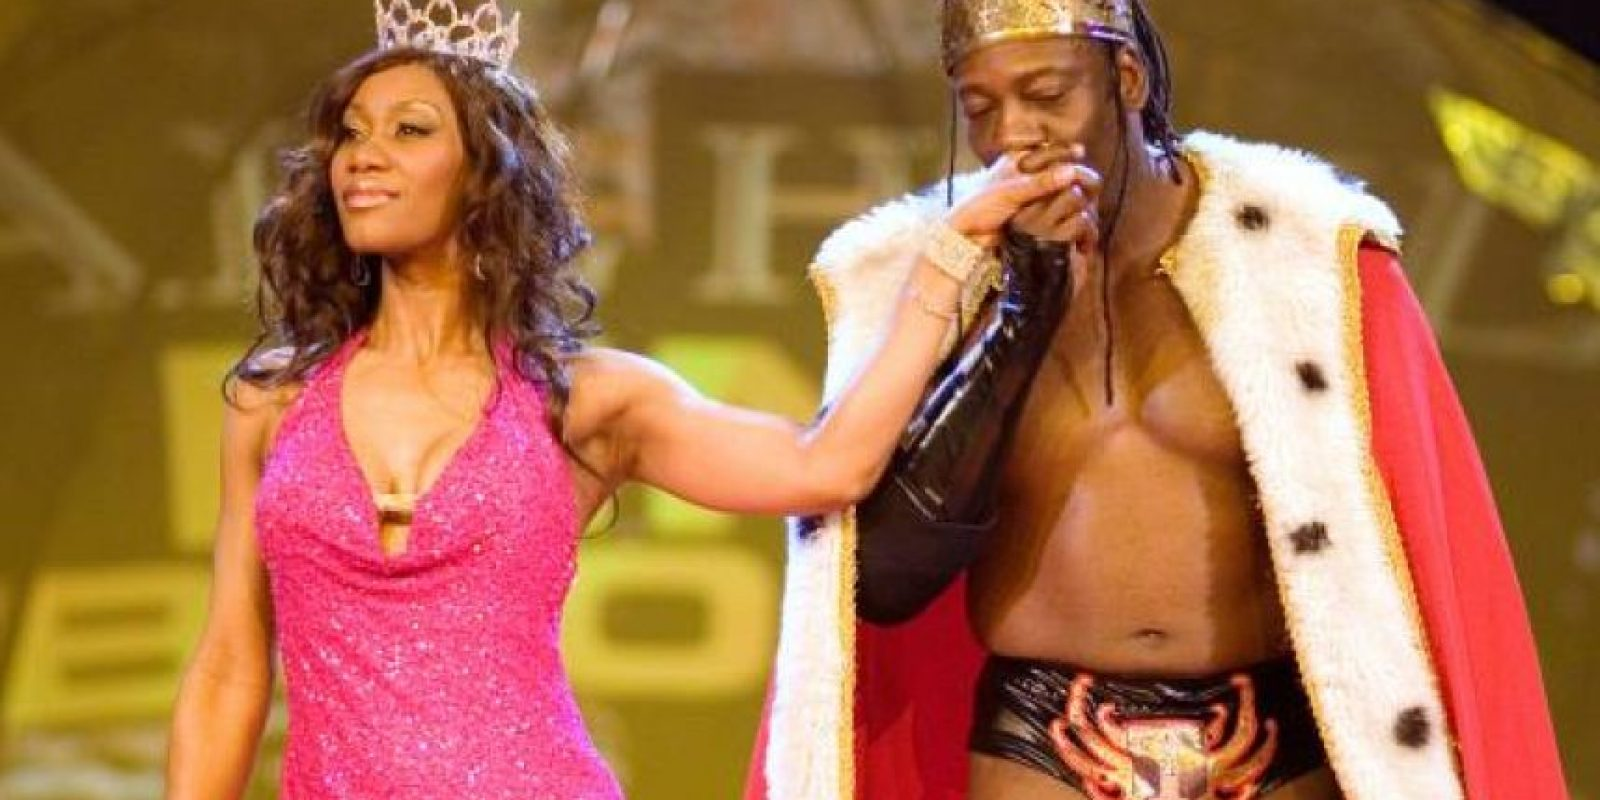 10. Sharmell y Booker T Foto: WWE